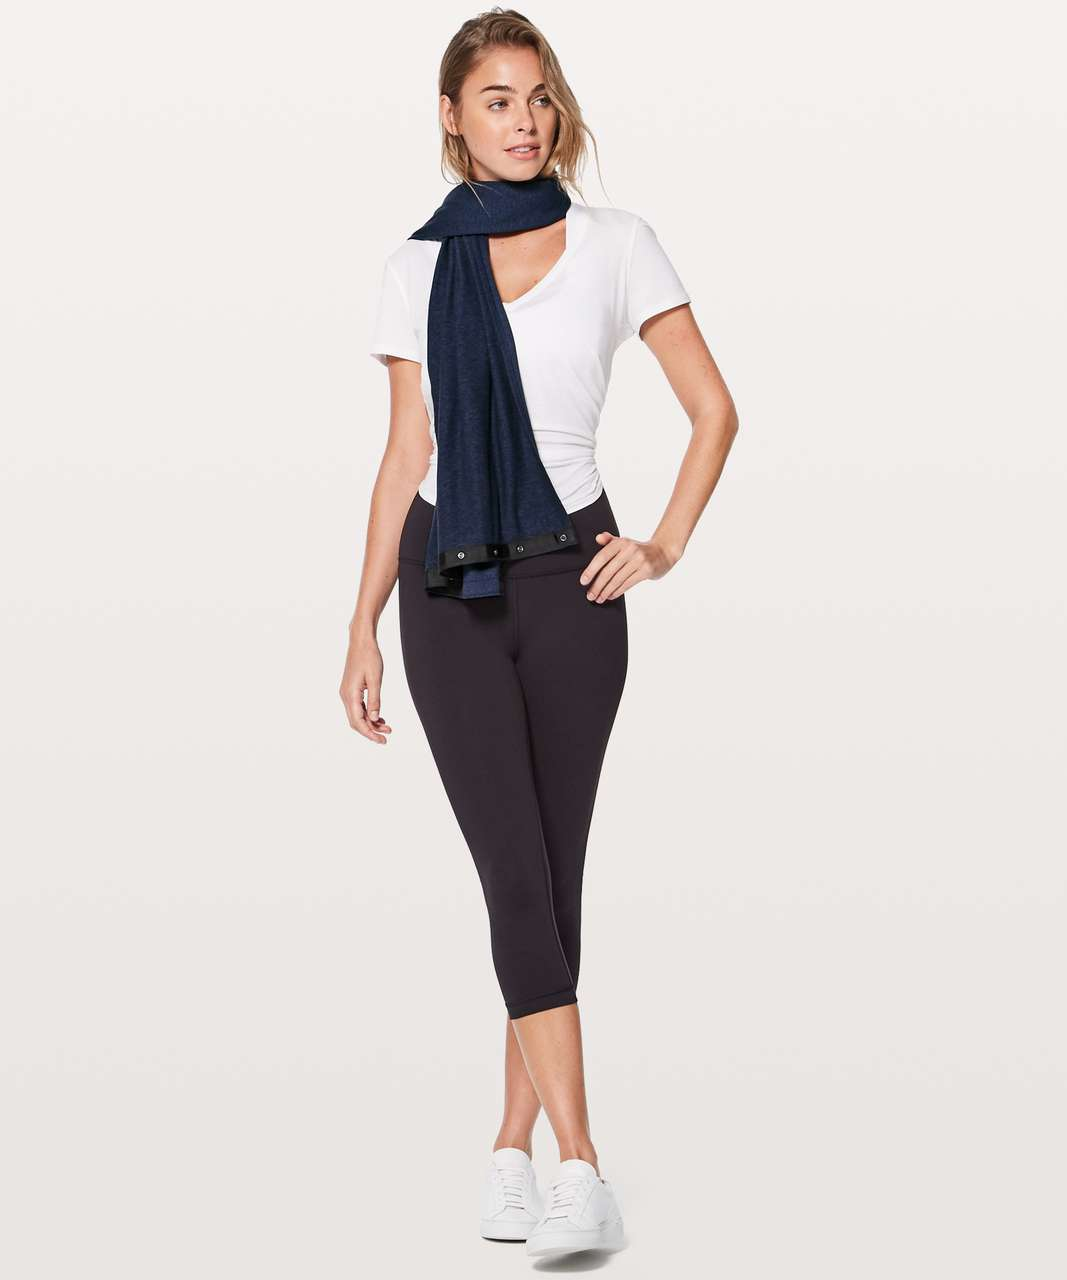 Lululemon Vinyasa Scarf *Rulu - Heathered Hero Blue